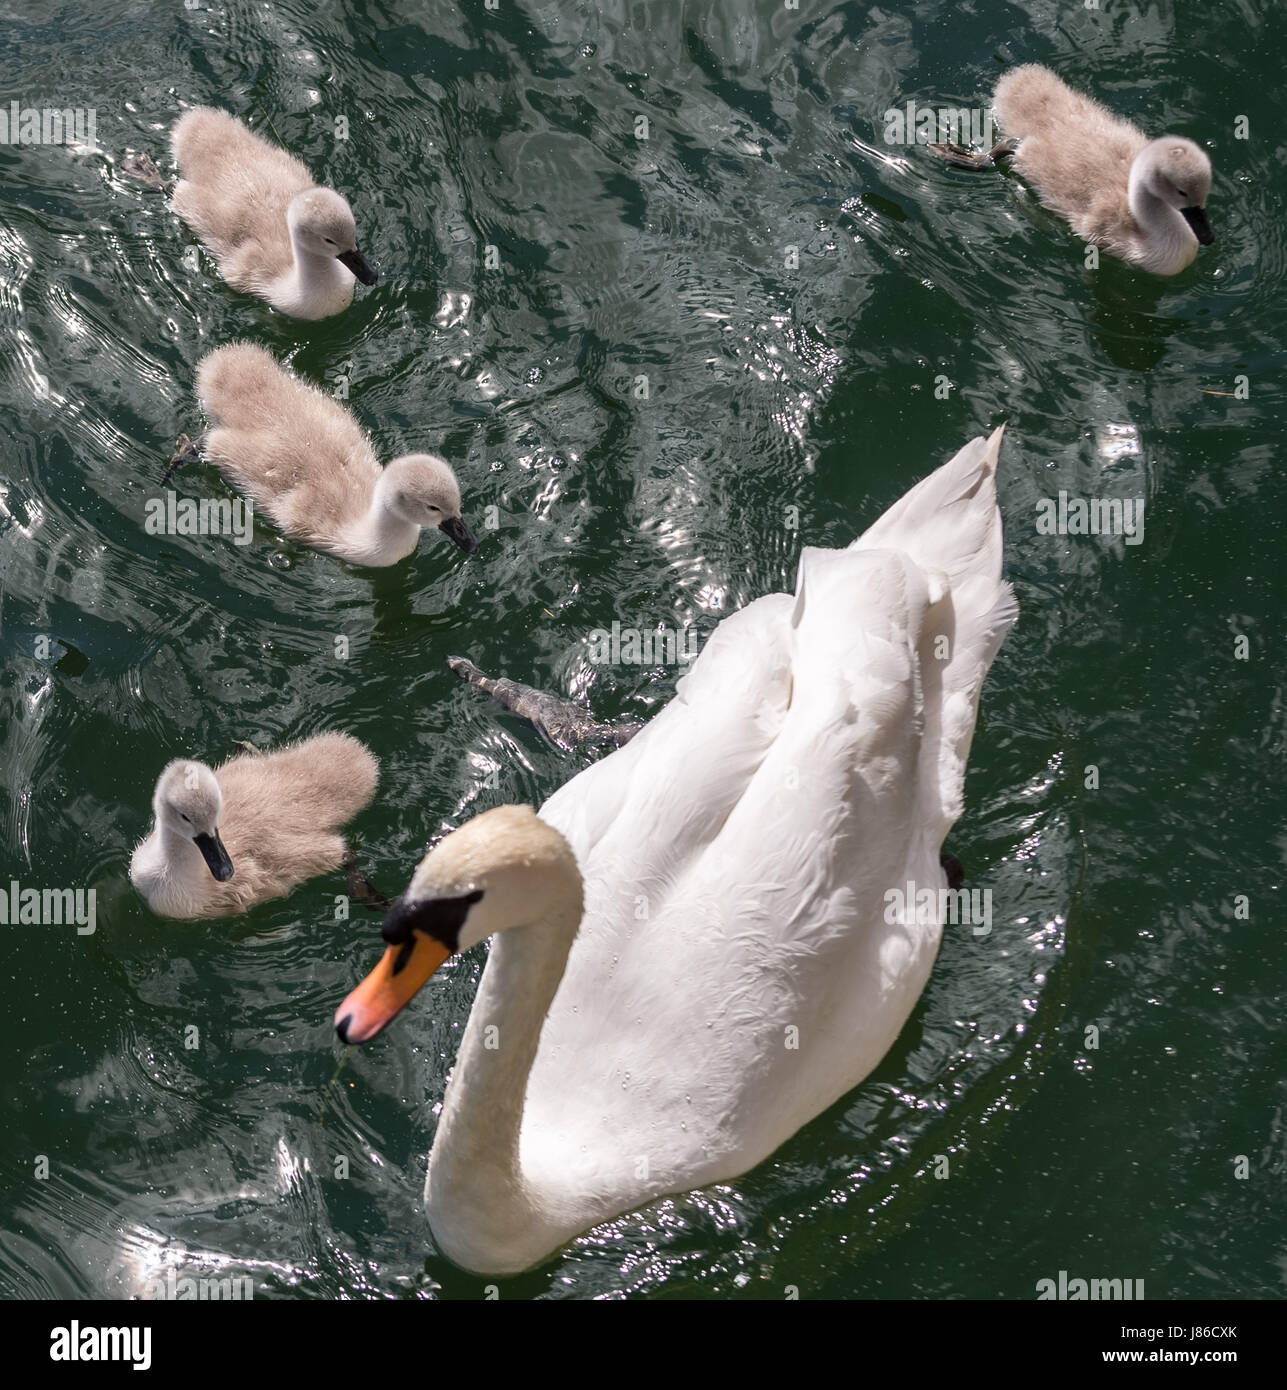 London, UK. 27th May, 2017. Mute swan with cygnet hatchlings on Canada Water pond © Guy Corbishley/Alamy Live - Stock Image